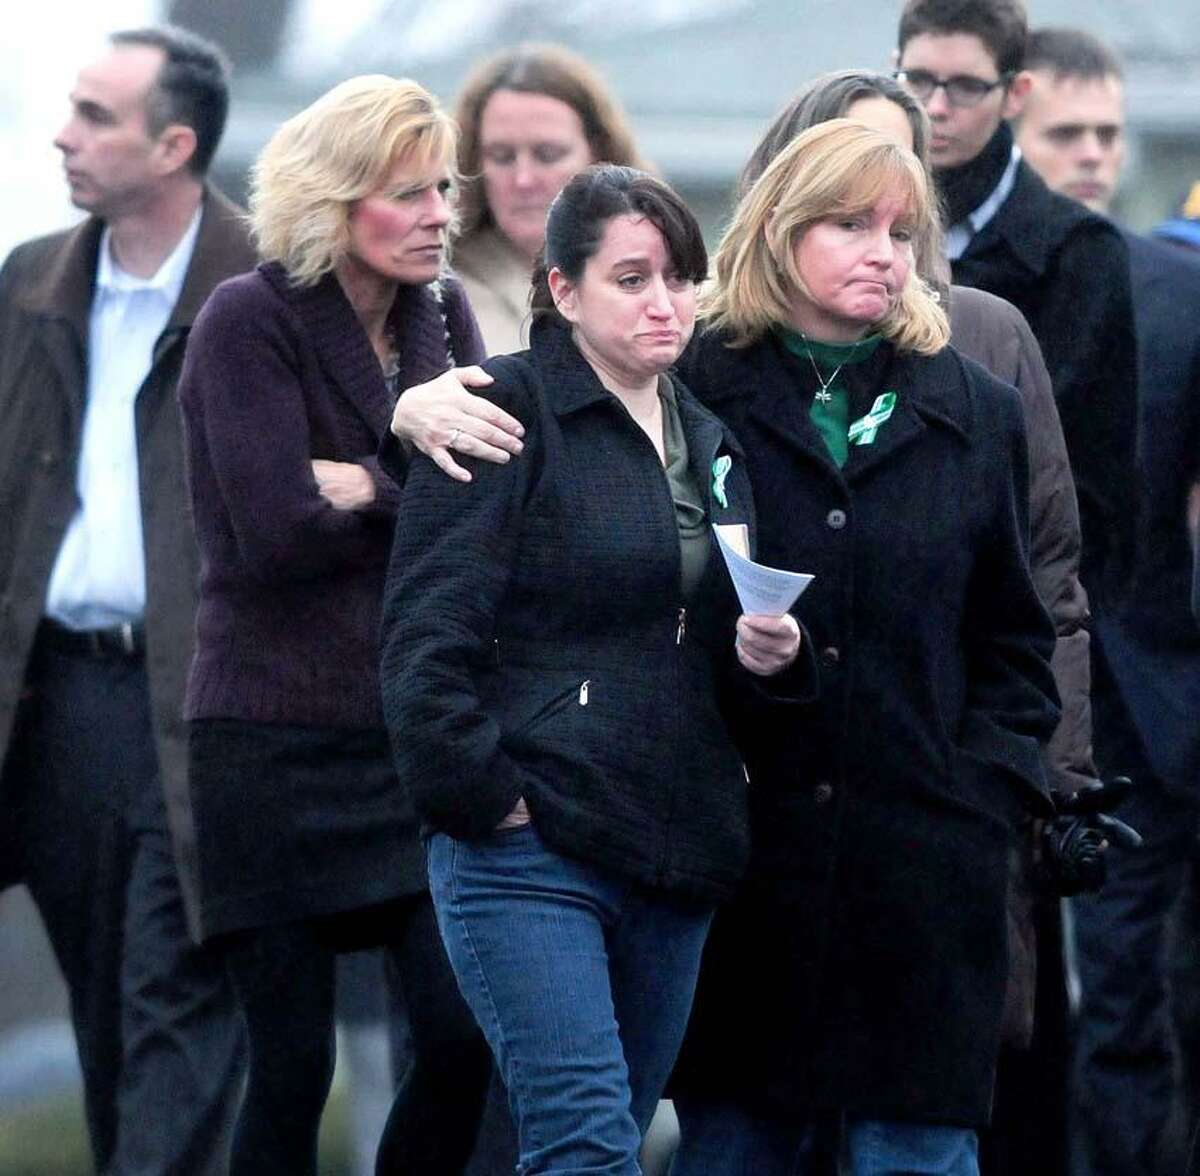 Mourners leave the Honan Funeral Home in Newtown on 12/17/2012 after funeral services for six-year-old Jack Pinto, a victim of the Sandy Hook Elementary School shootings.Photo by Arnold Gold/New Haven Register